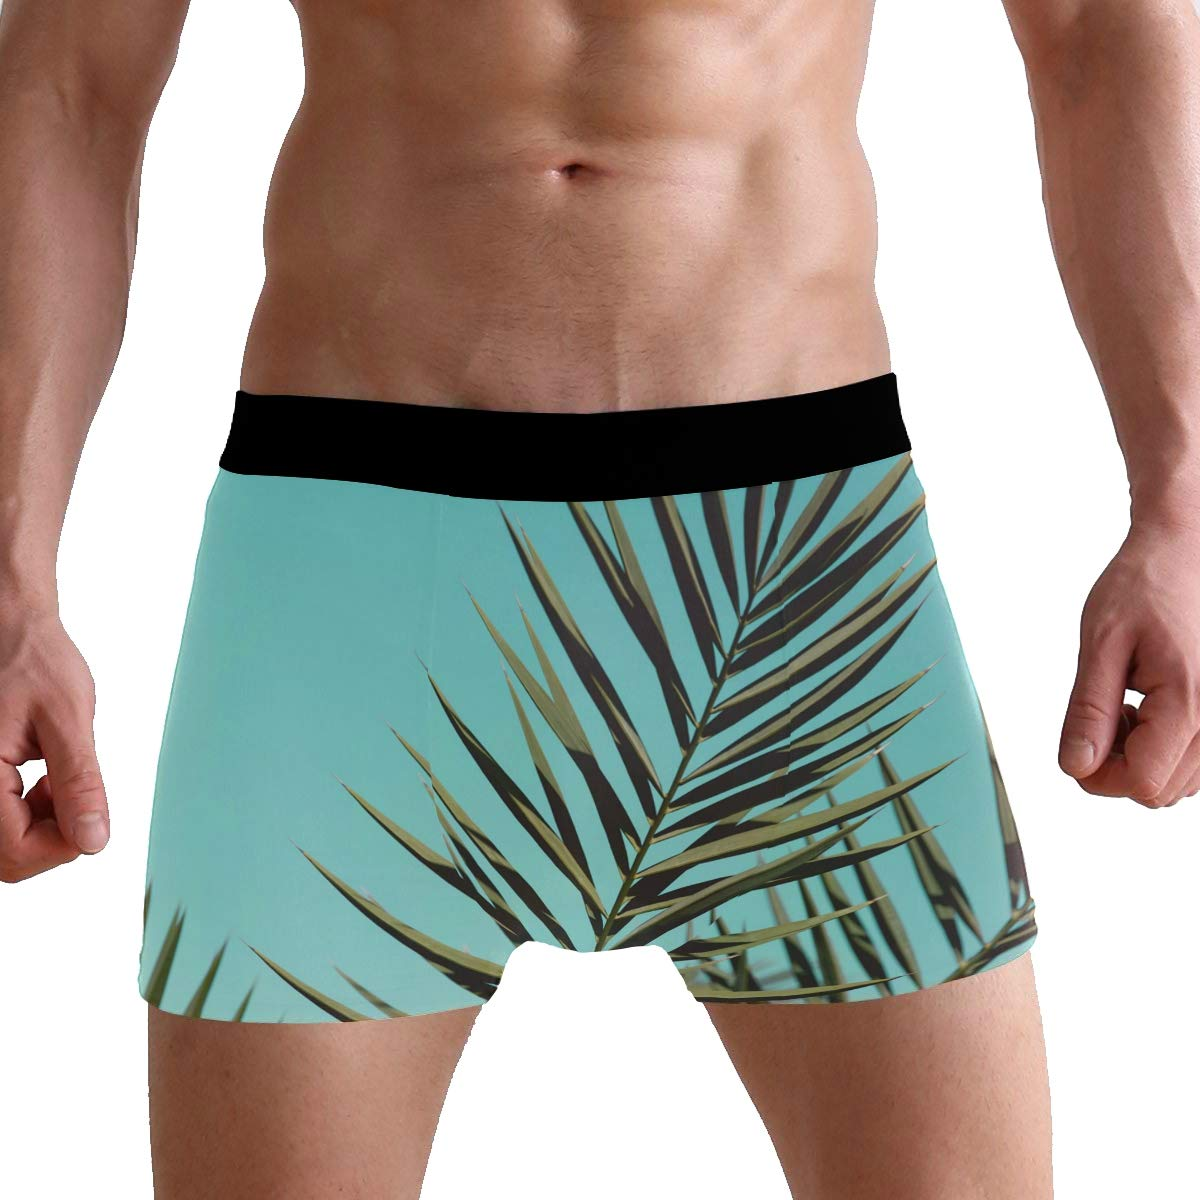 Hipster Unique Sky Leaves Green Colors Boxer Briefs Mens Underwear Boys Breathable Stretch Low Rise